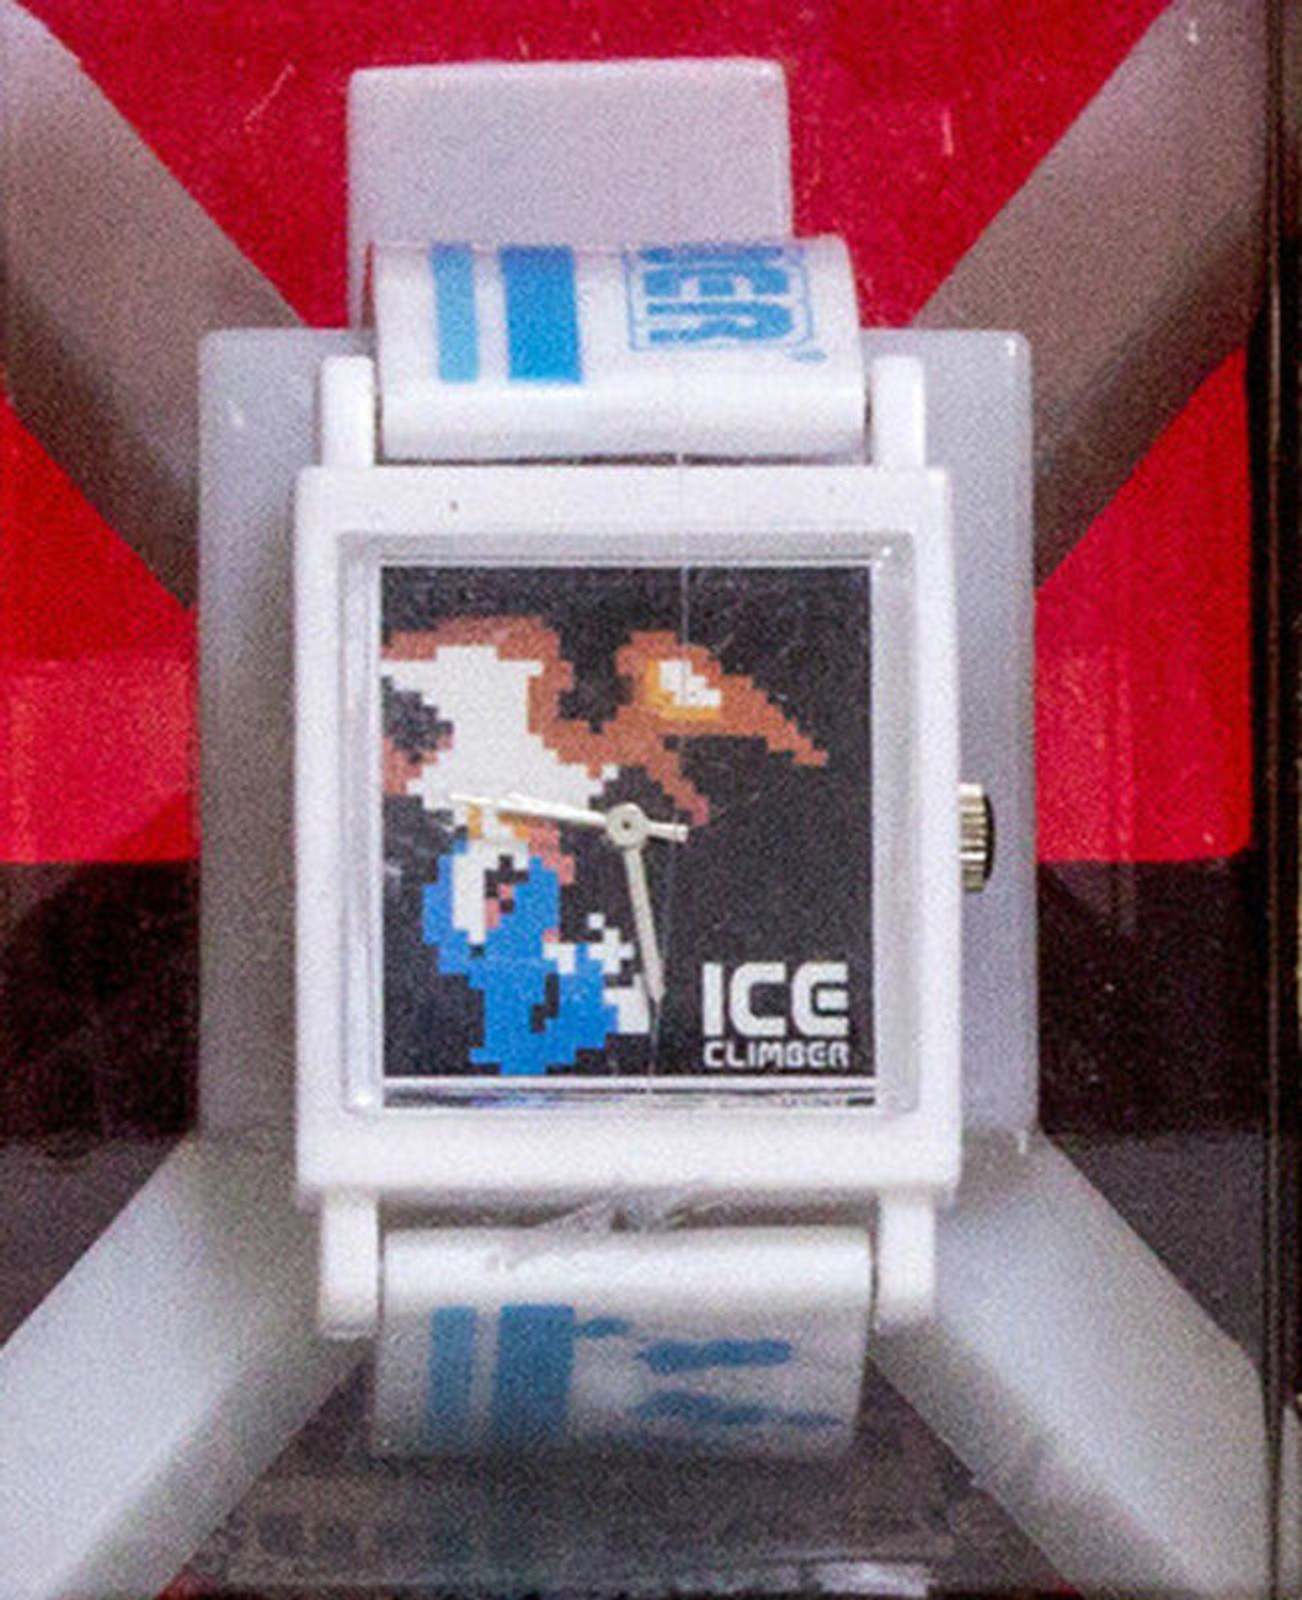 RARE Nintendo Wristwatch In Cubecase Ice Climber Banpresto JAPAN GAME NES